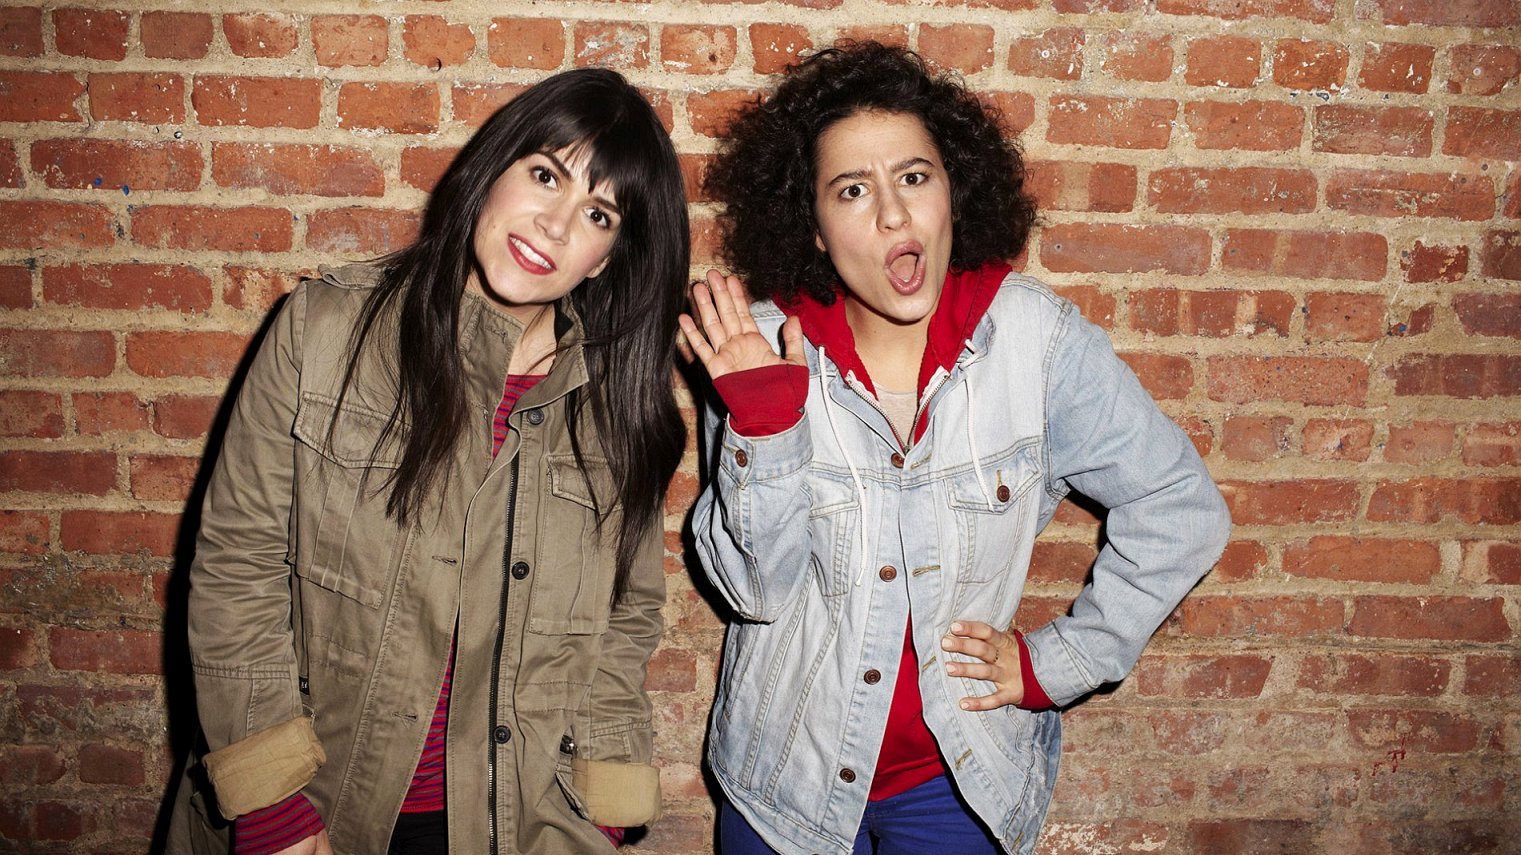 what time does Broad City come on